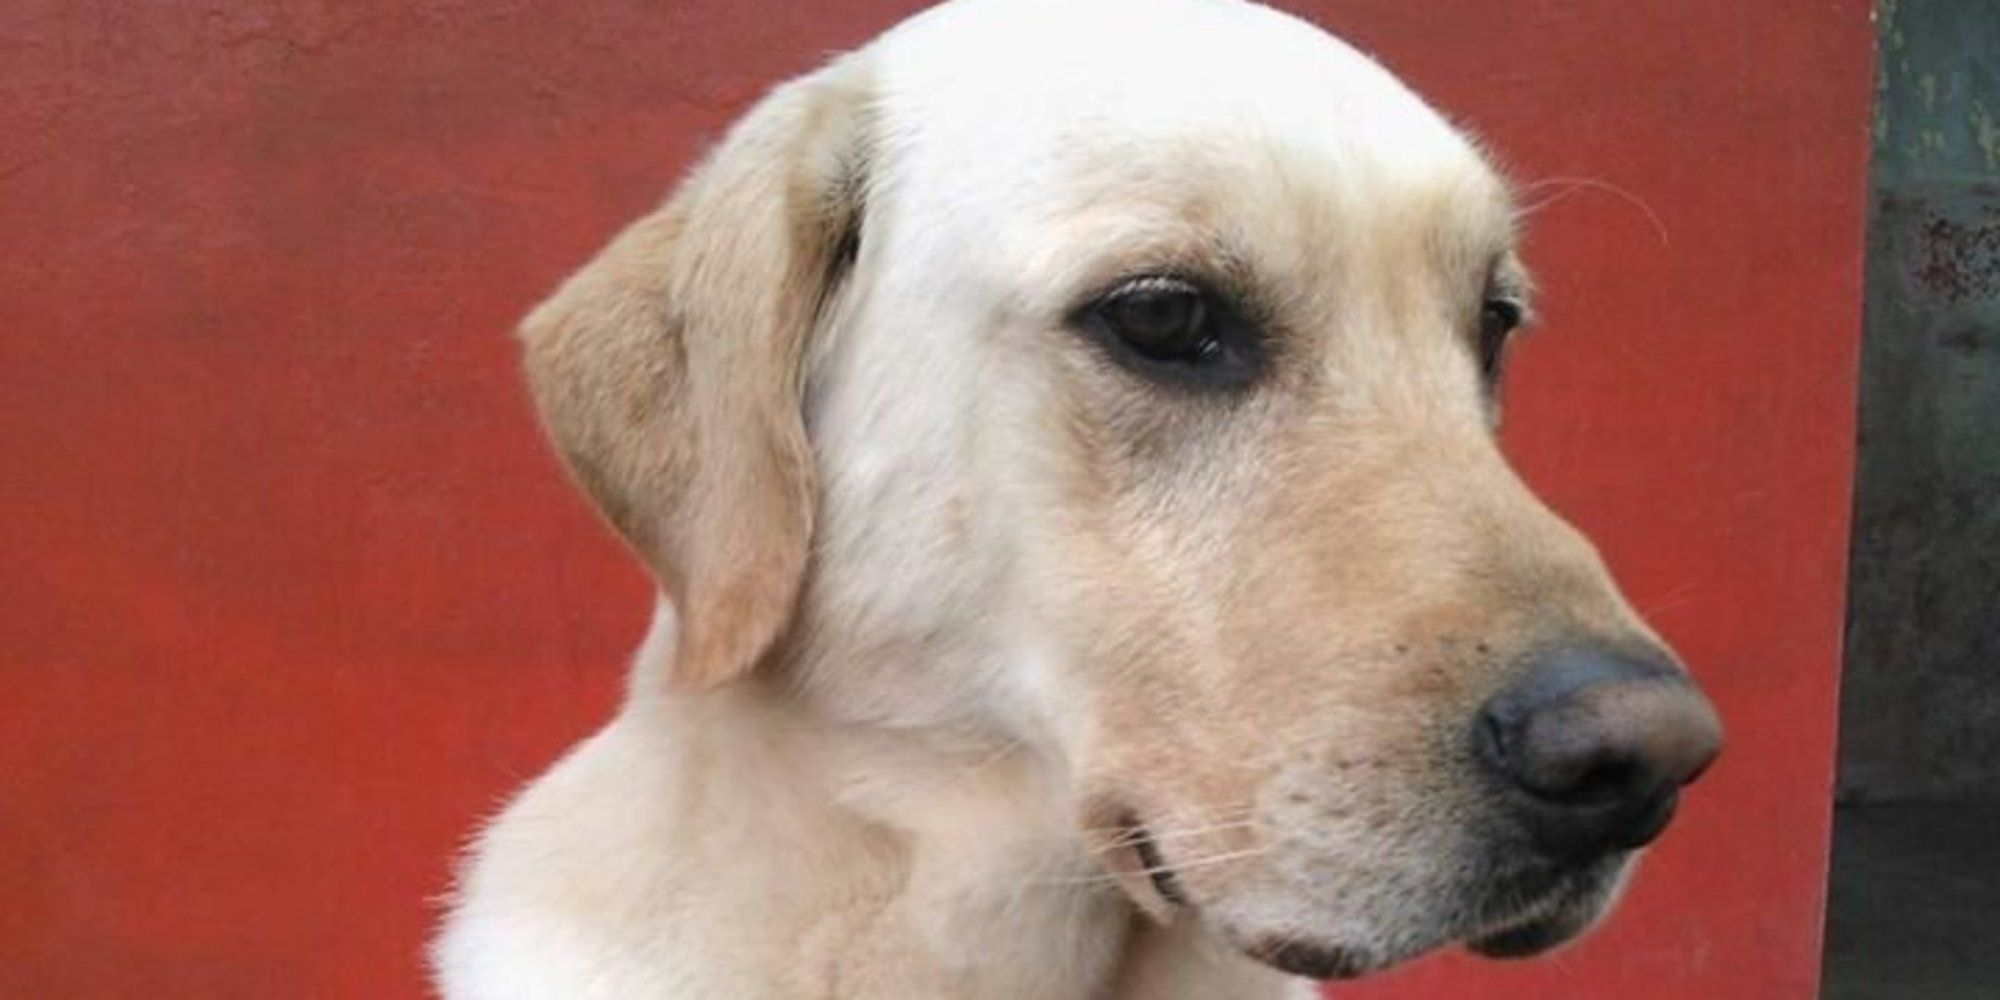 Hero Dog Rescues 7 People Then Collapses And Dies Rescue Dogs